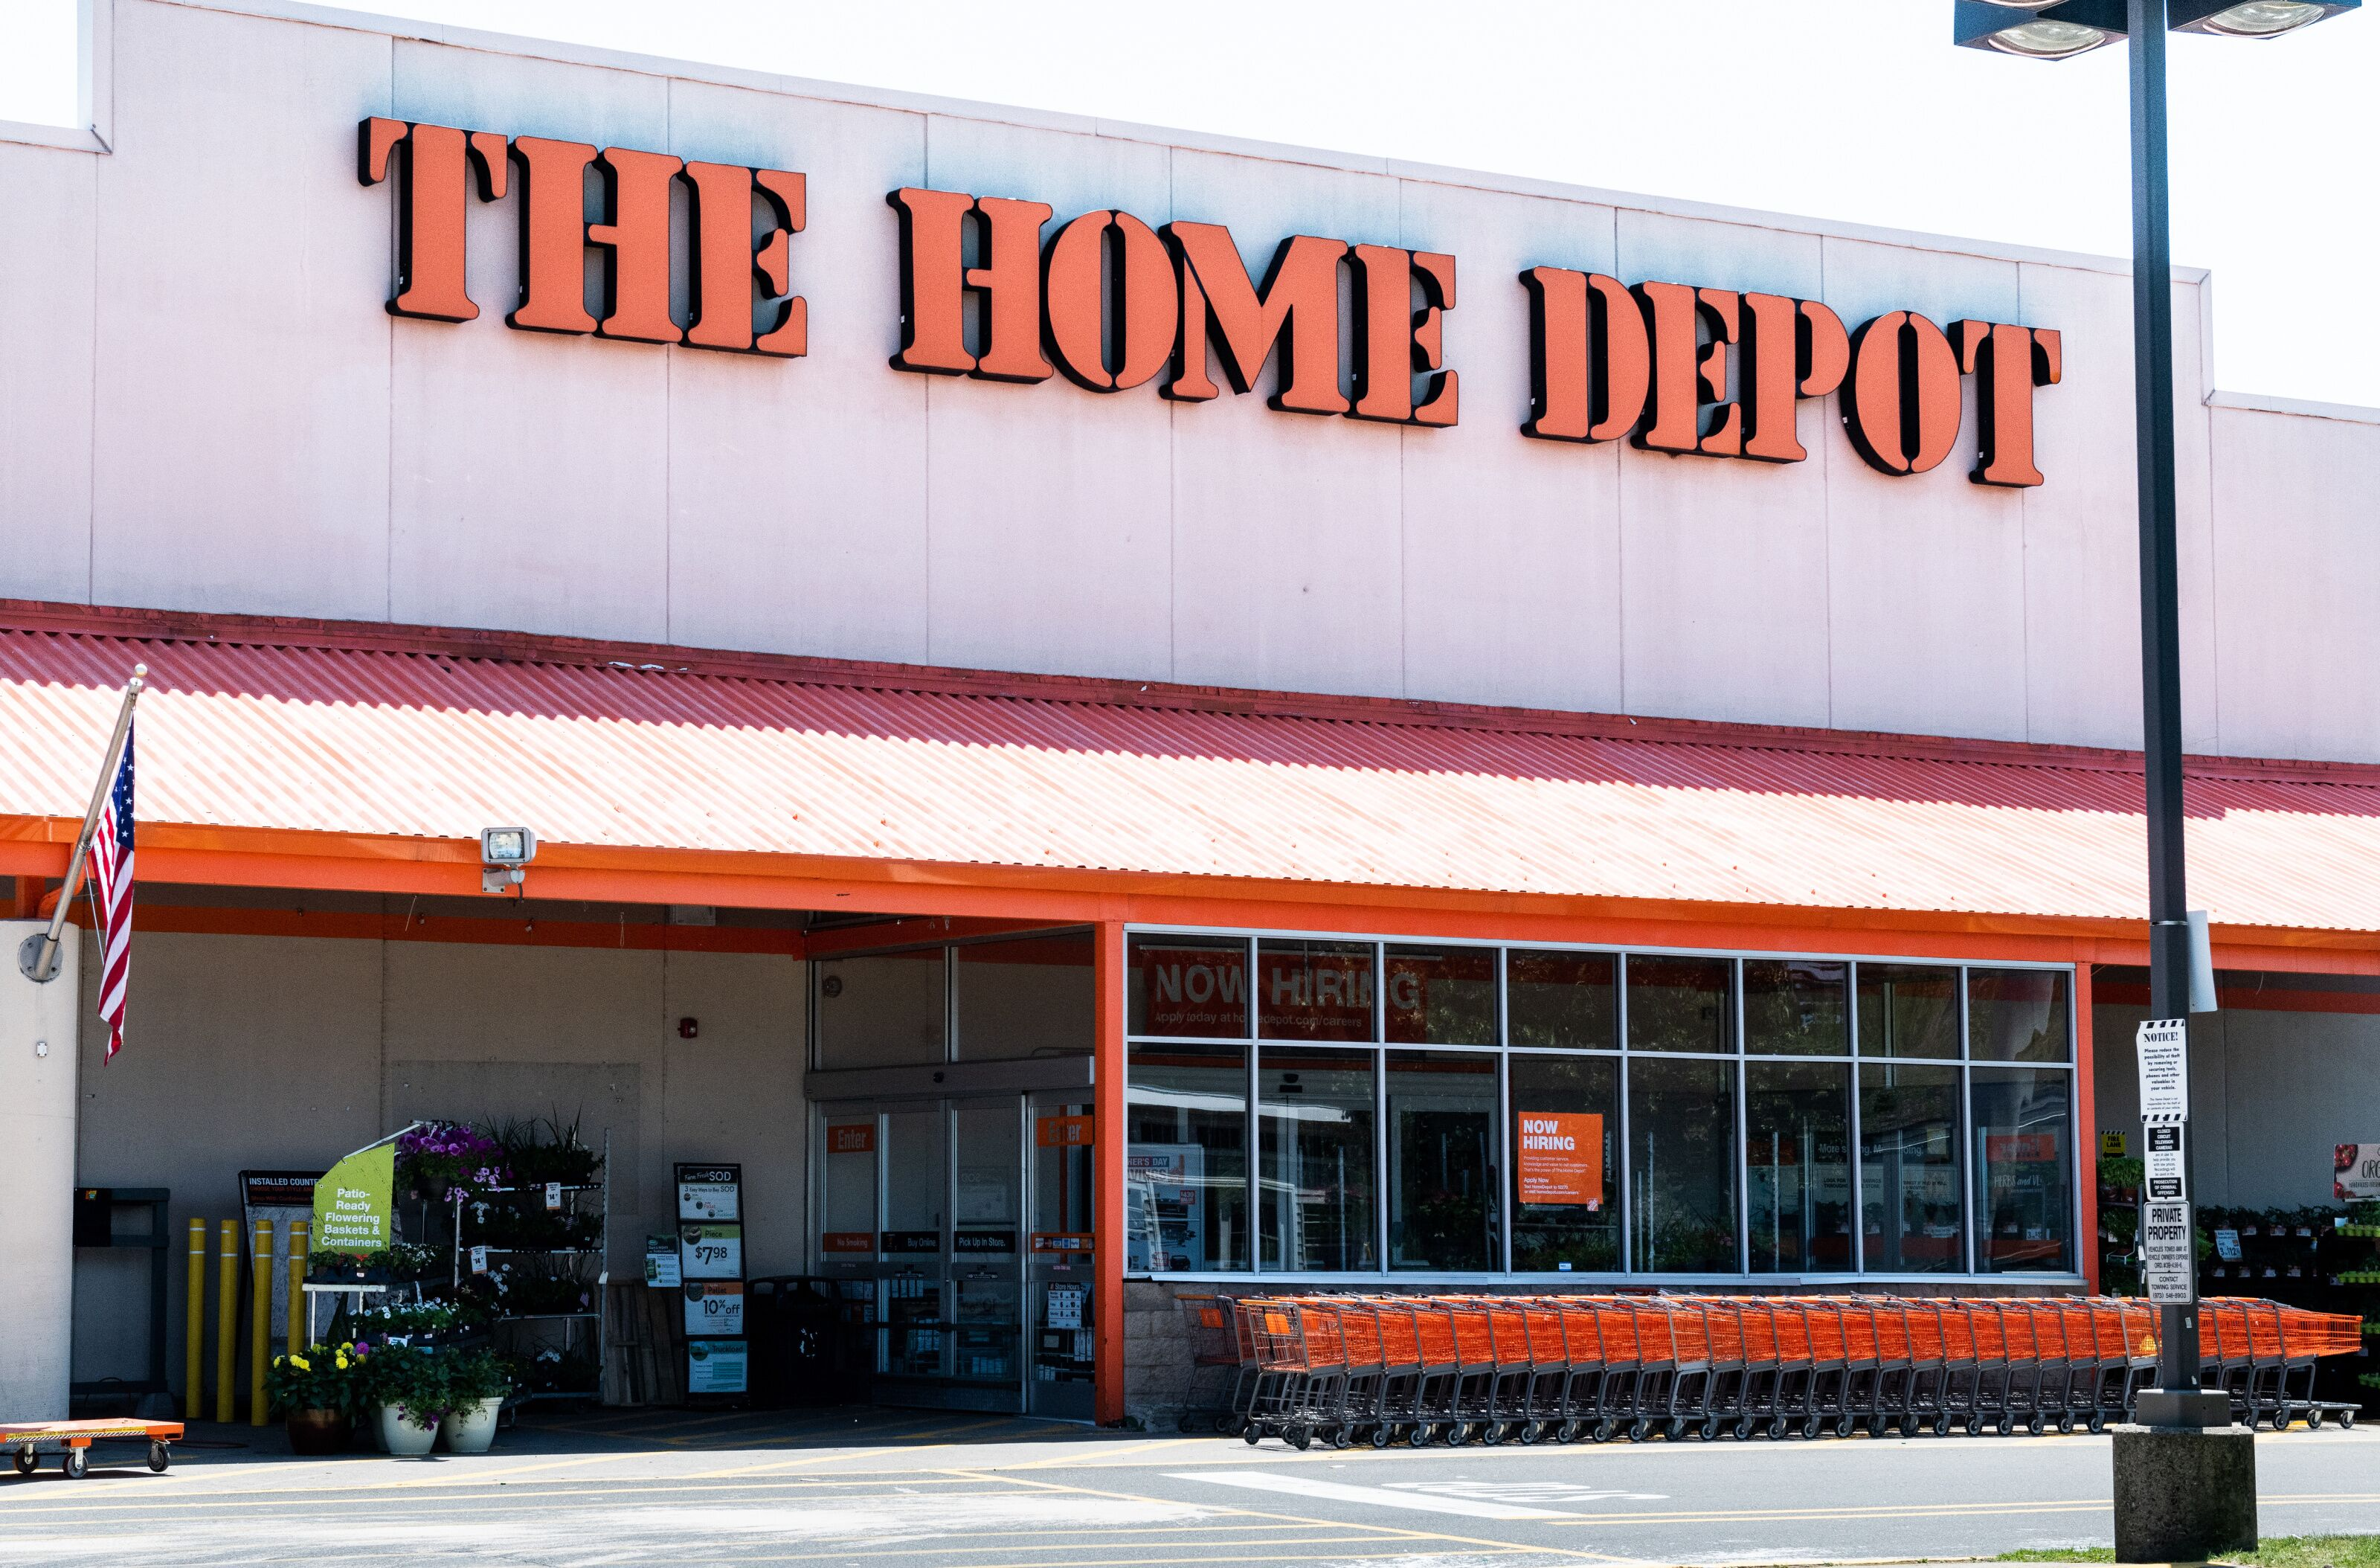 Home Depot Hours Of Operation – Store Locations Near Me And Phone with Home Depot Holiday Hours July 4Th. Home Depot Hours On Holidays? – Home Depot inside Home Depot Holiday Hours July 4Th.